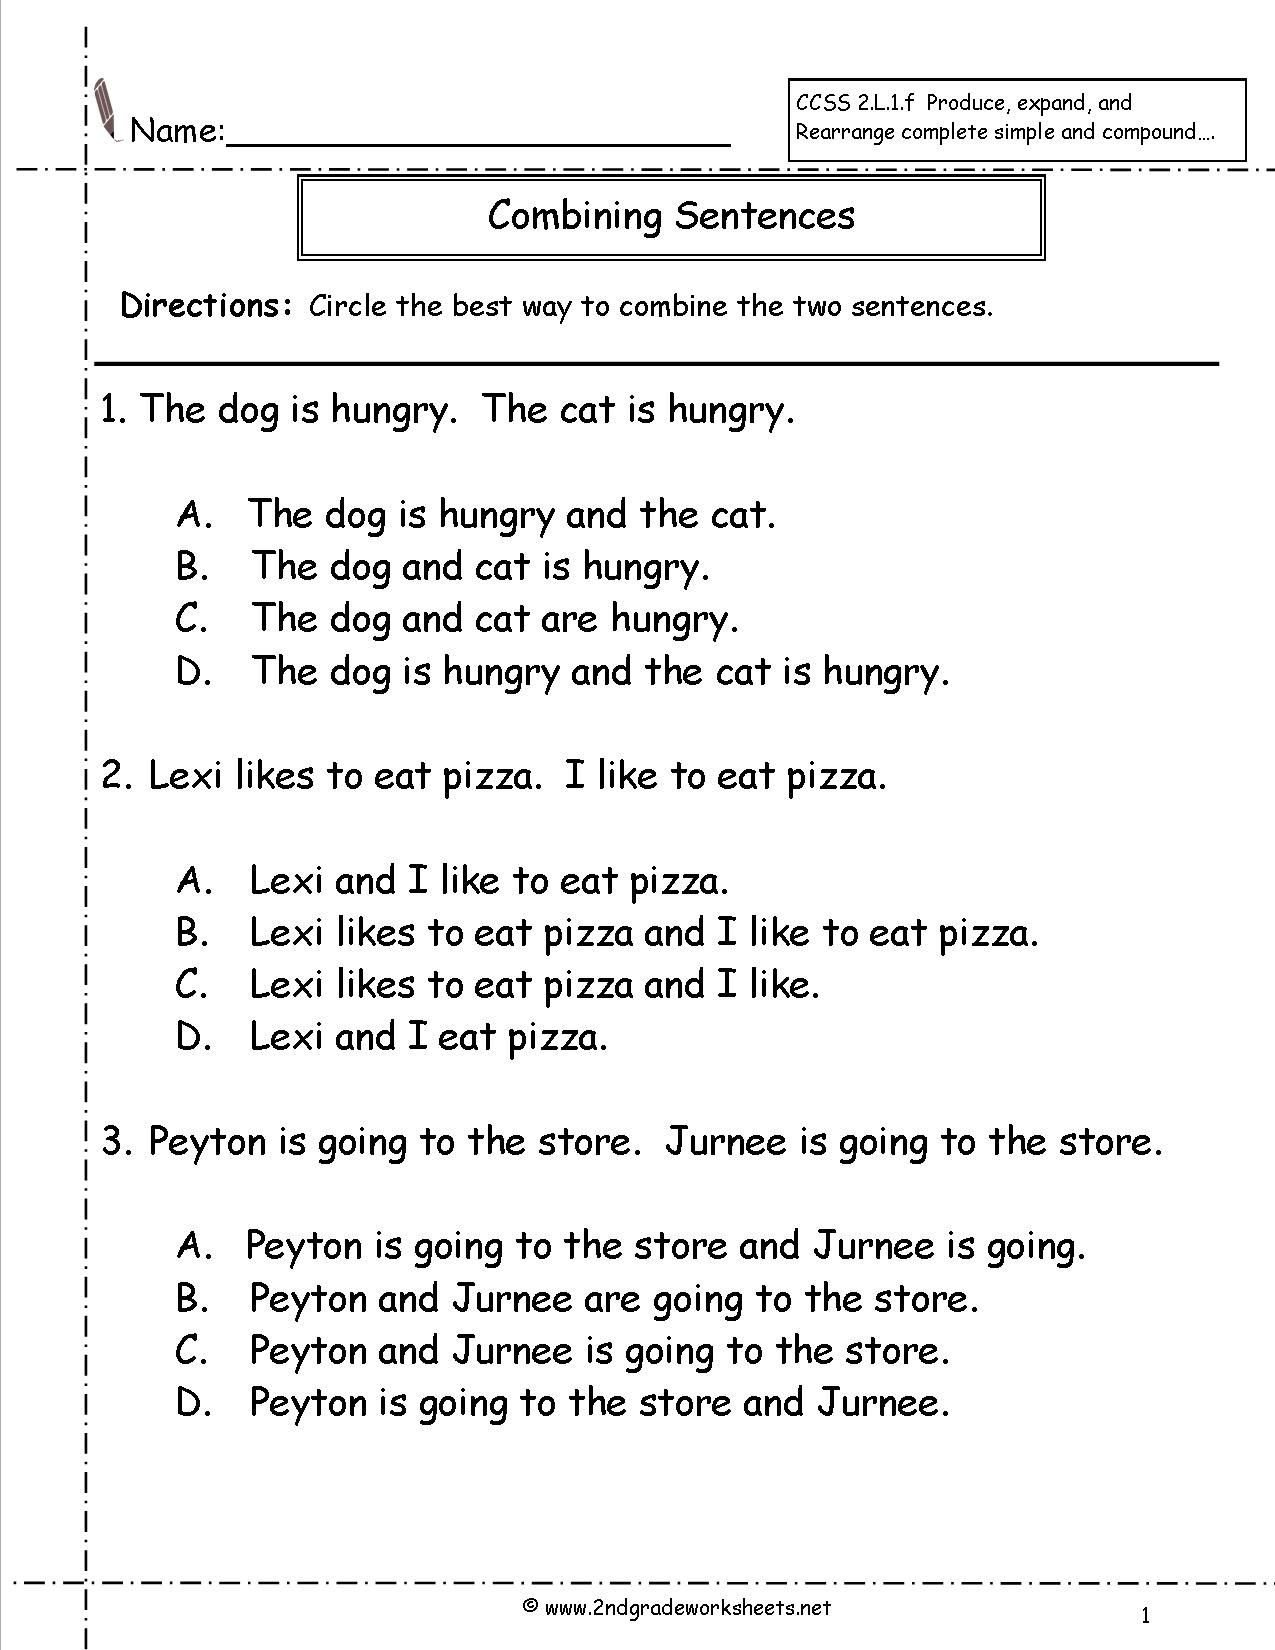 Making Compound Sentences Worksheets Bining Sentences Worksheet